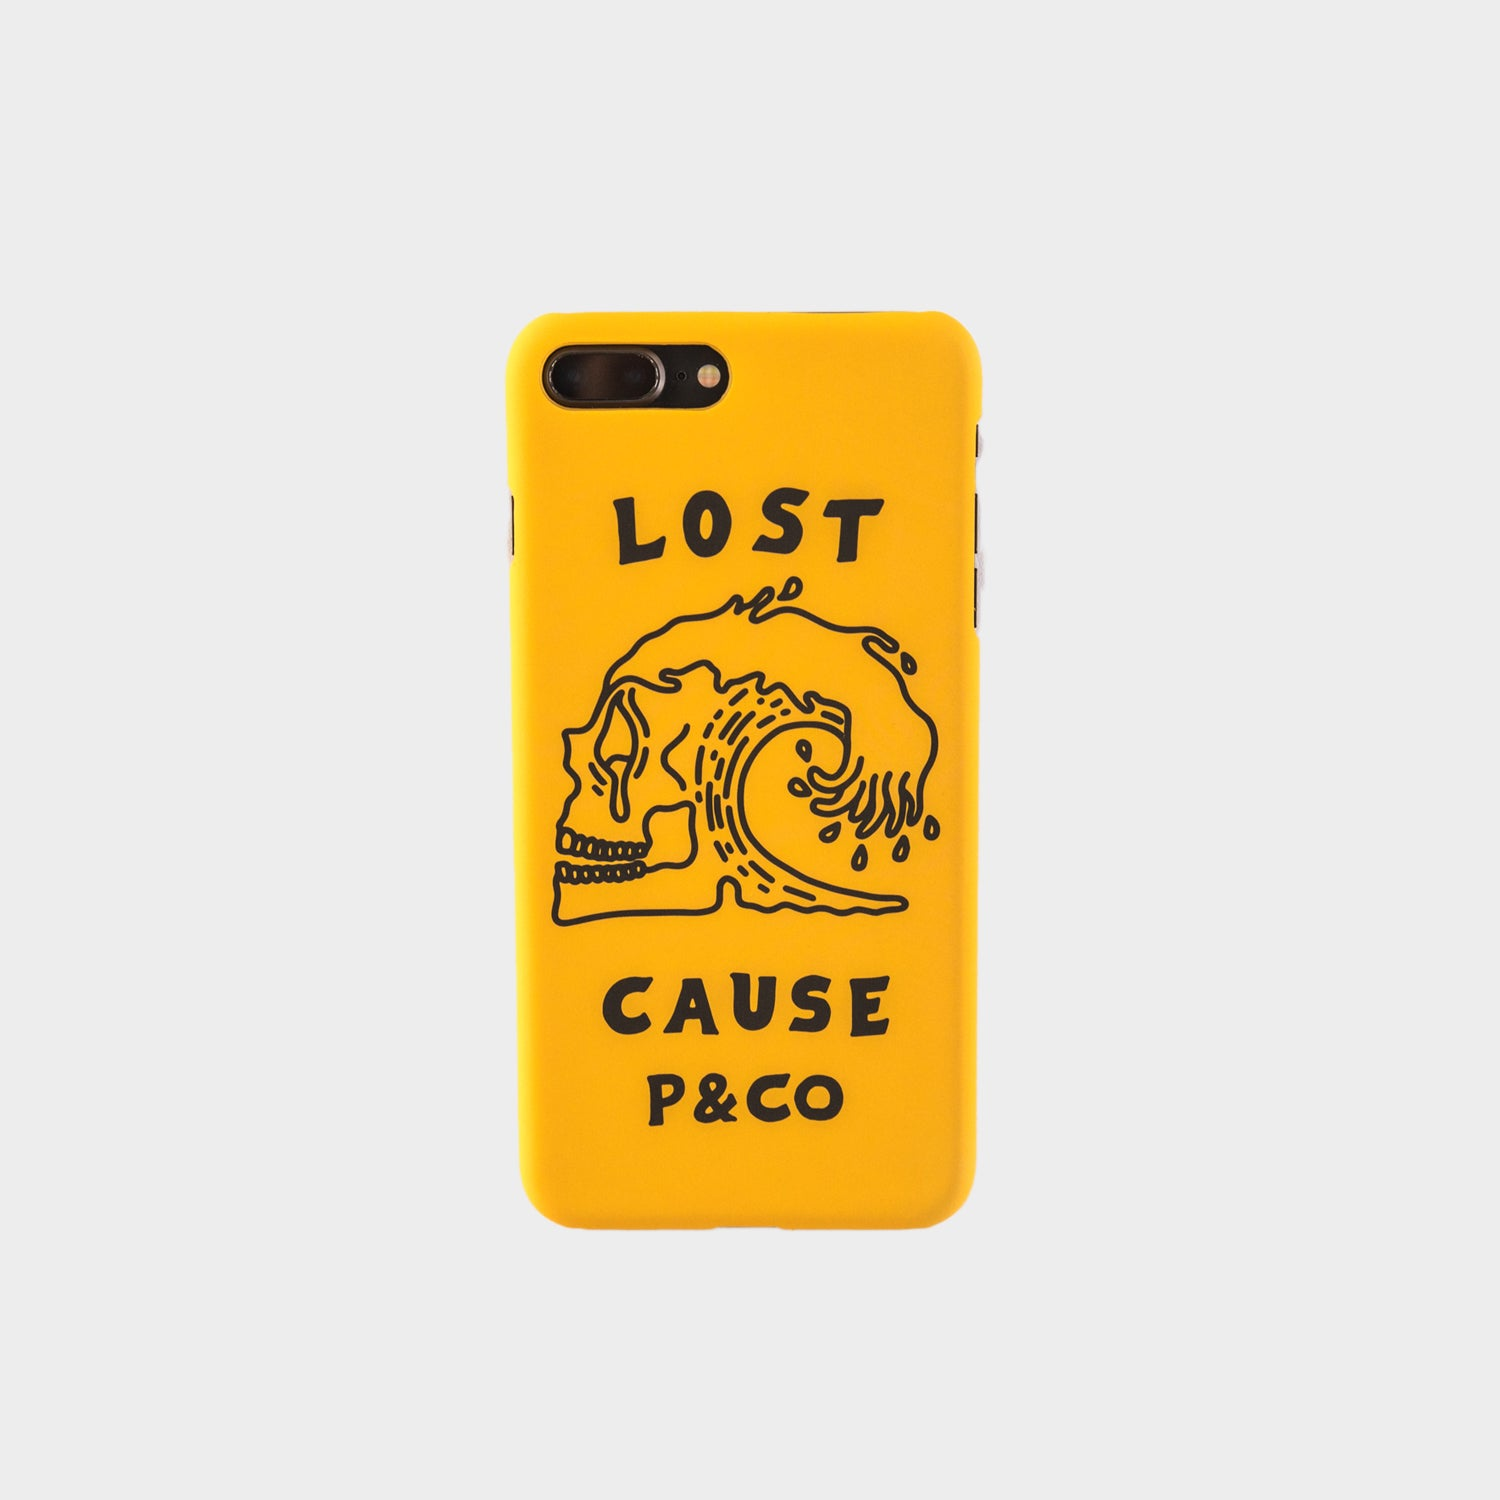 P&Co - Lost Cause Iphone Case 7/7+, 8/8+, X - Provision & Co